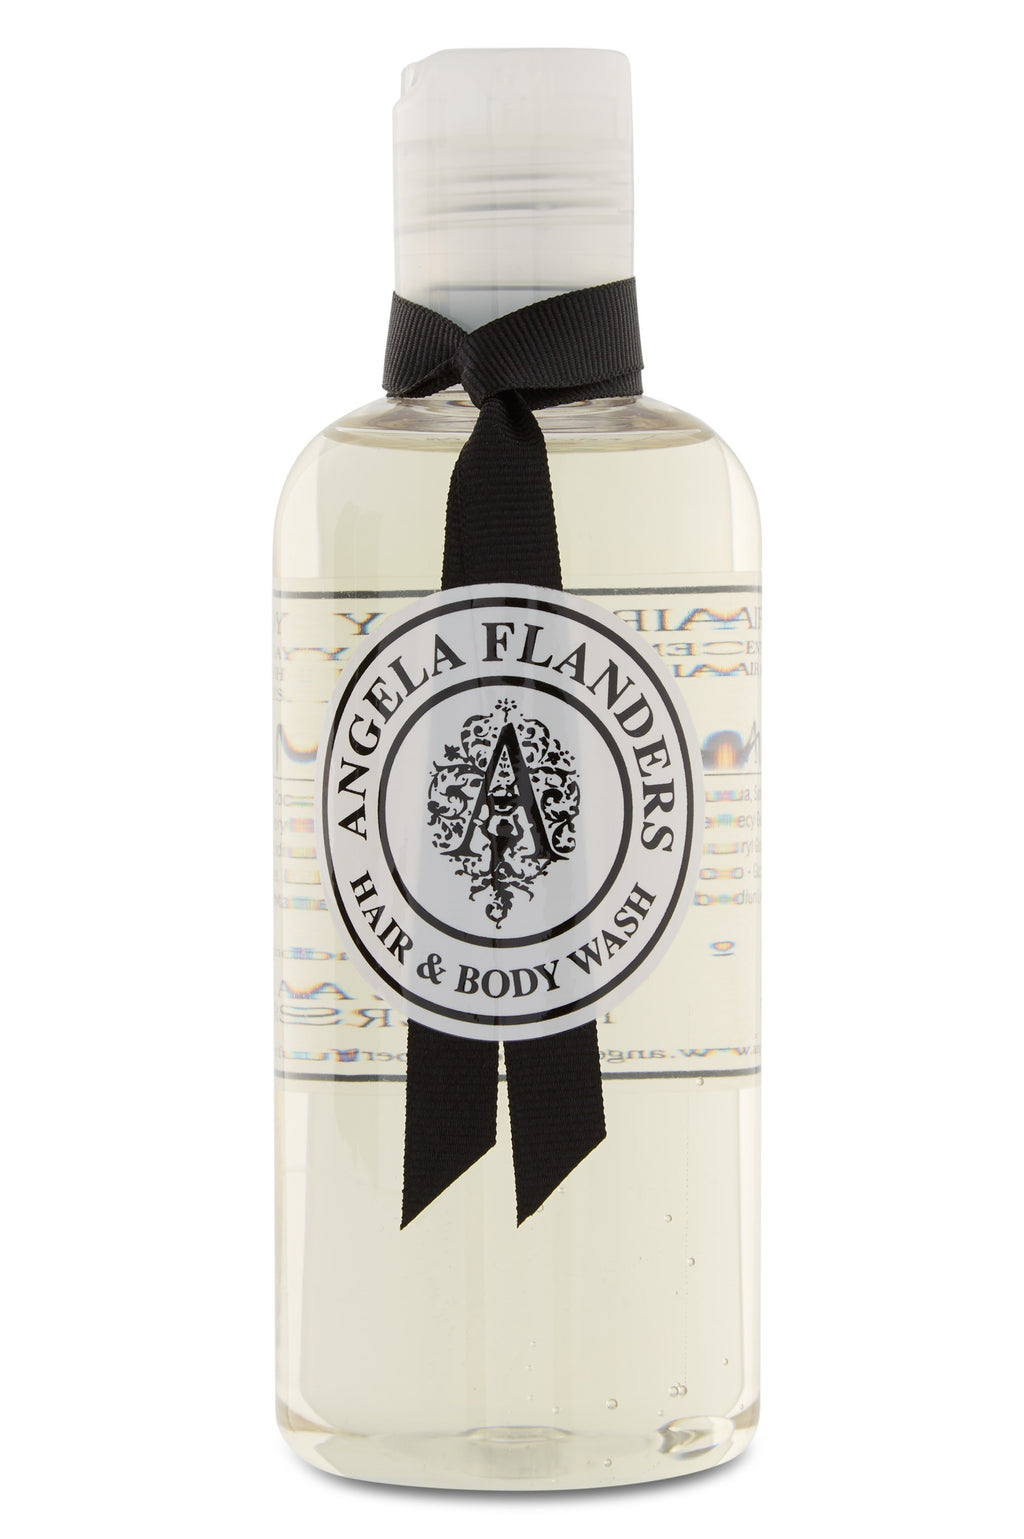 Angela Flanders Artillery No 5 Sandalwood Hair & Body Wash